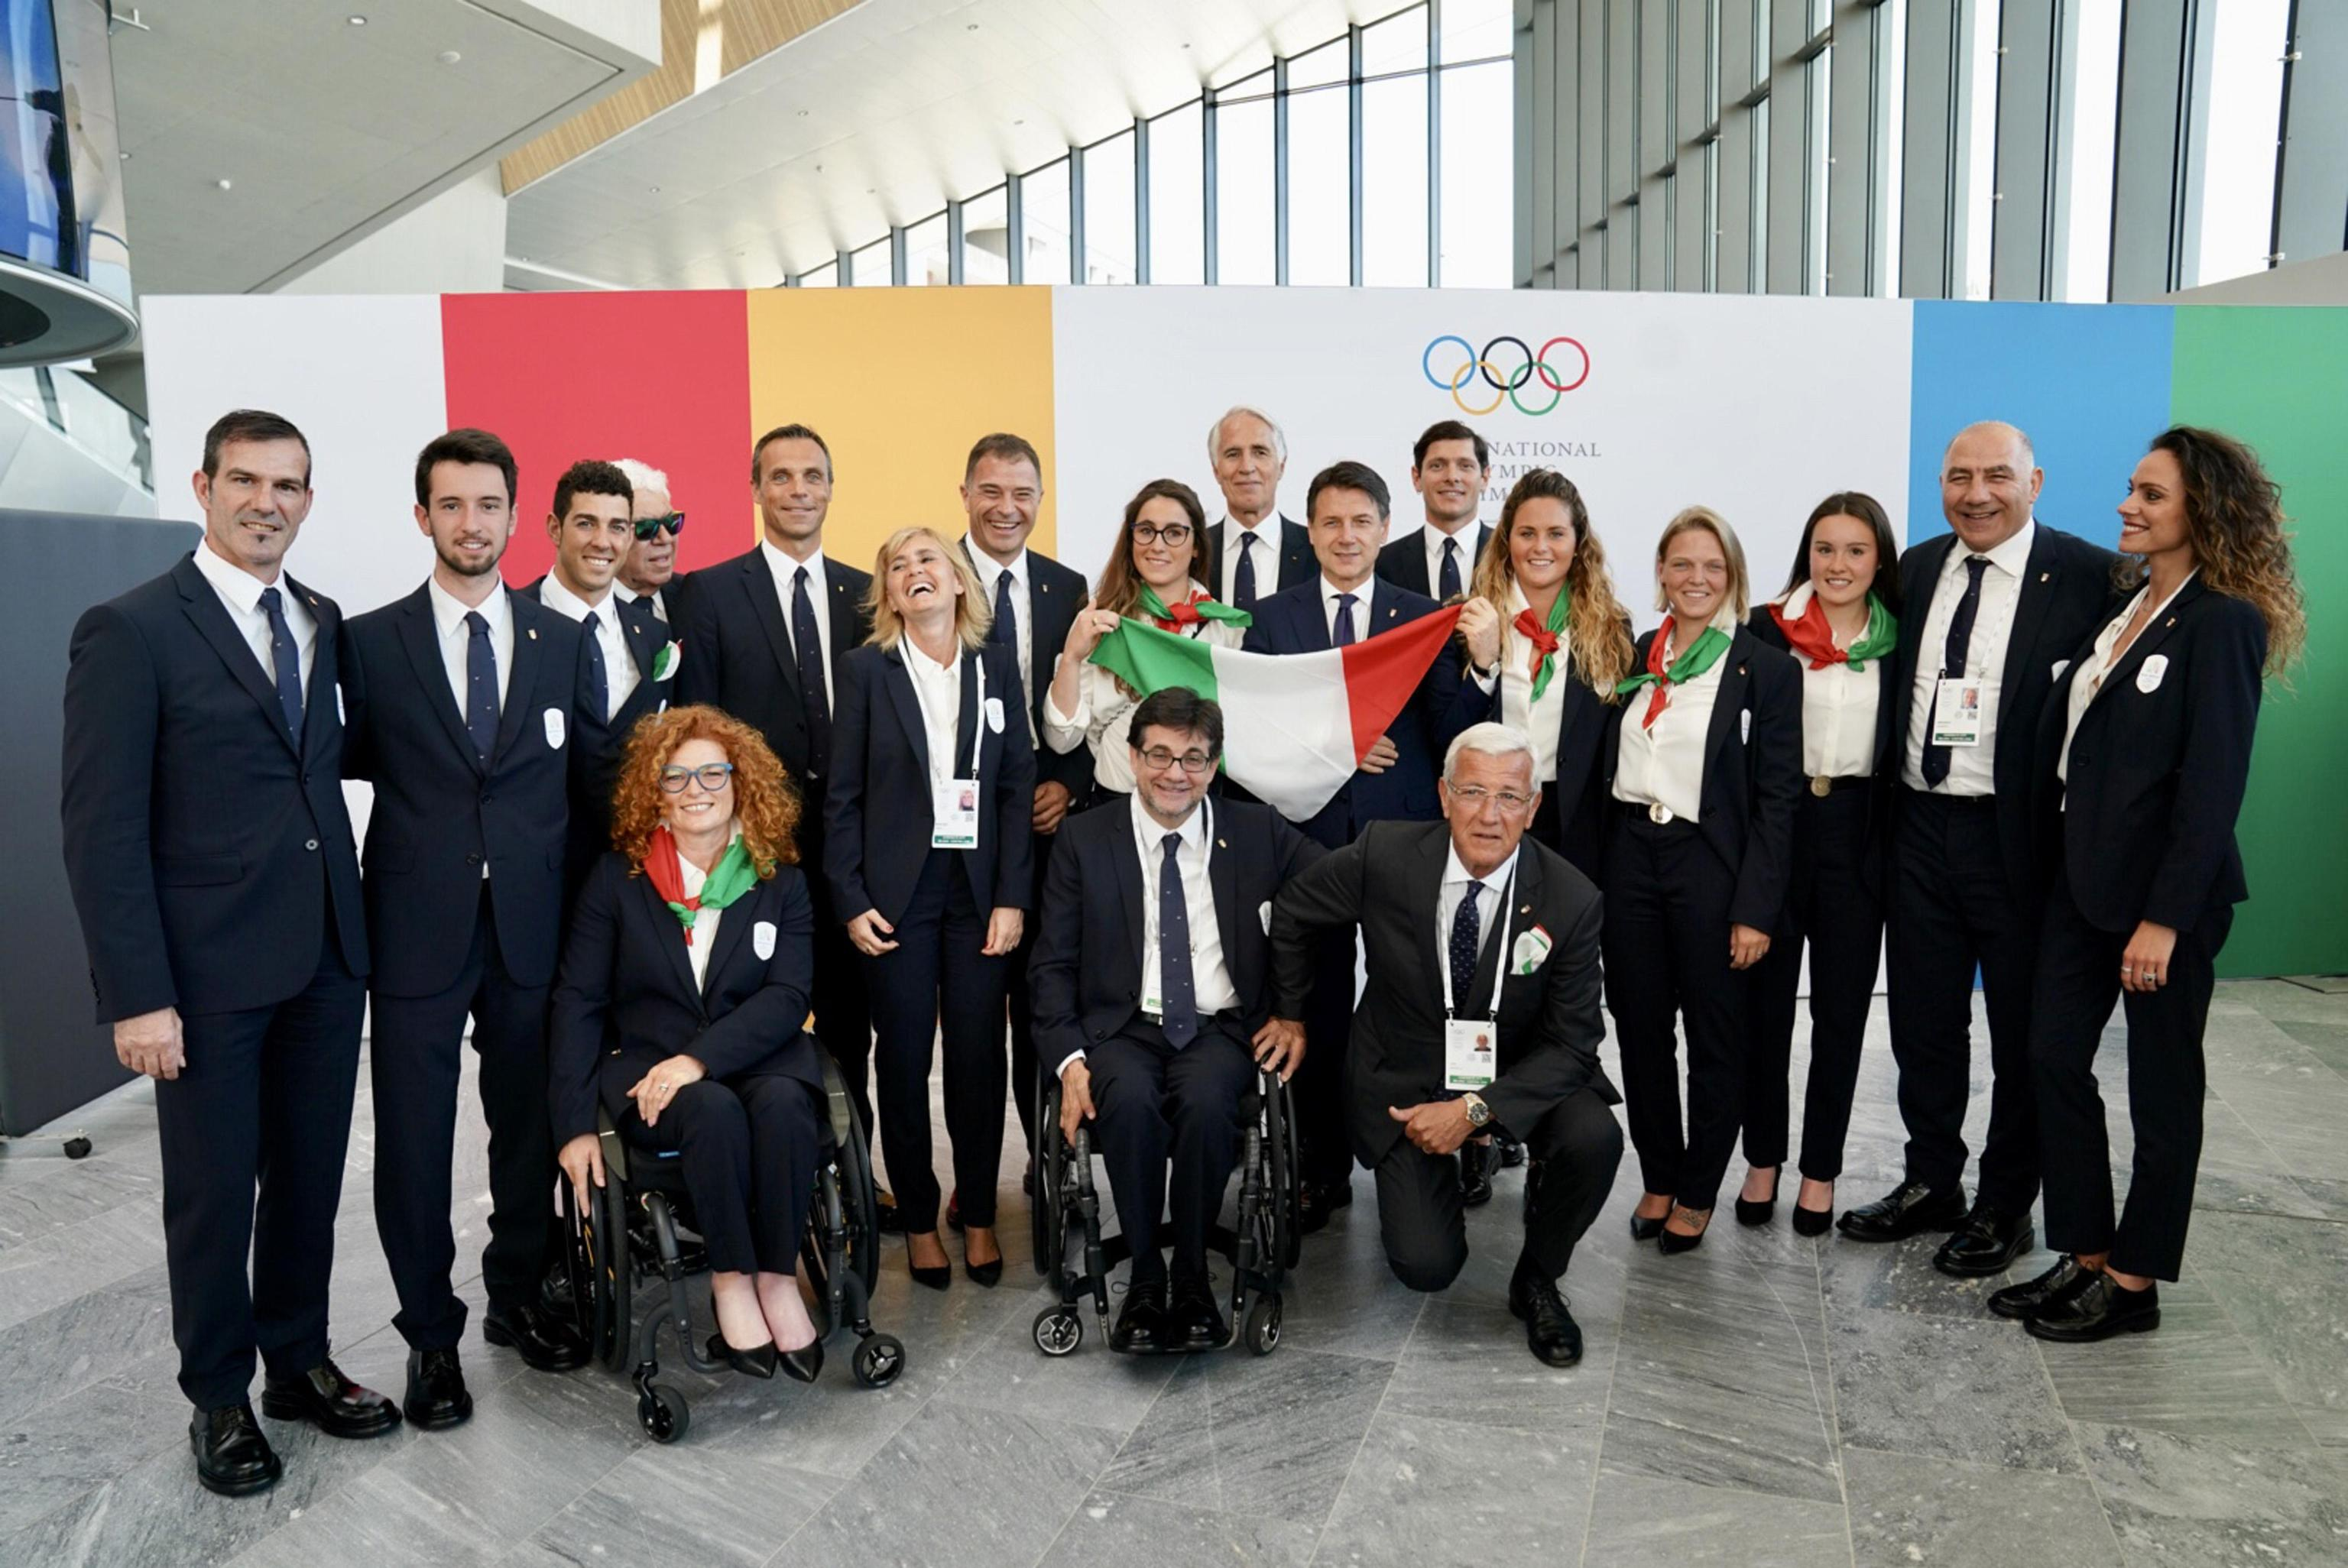 Photo of Olimpiadi Invernali 2026. Milano-Cortina vince la sfida